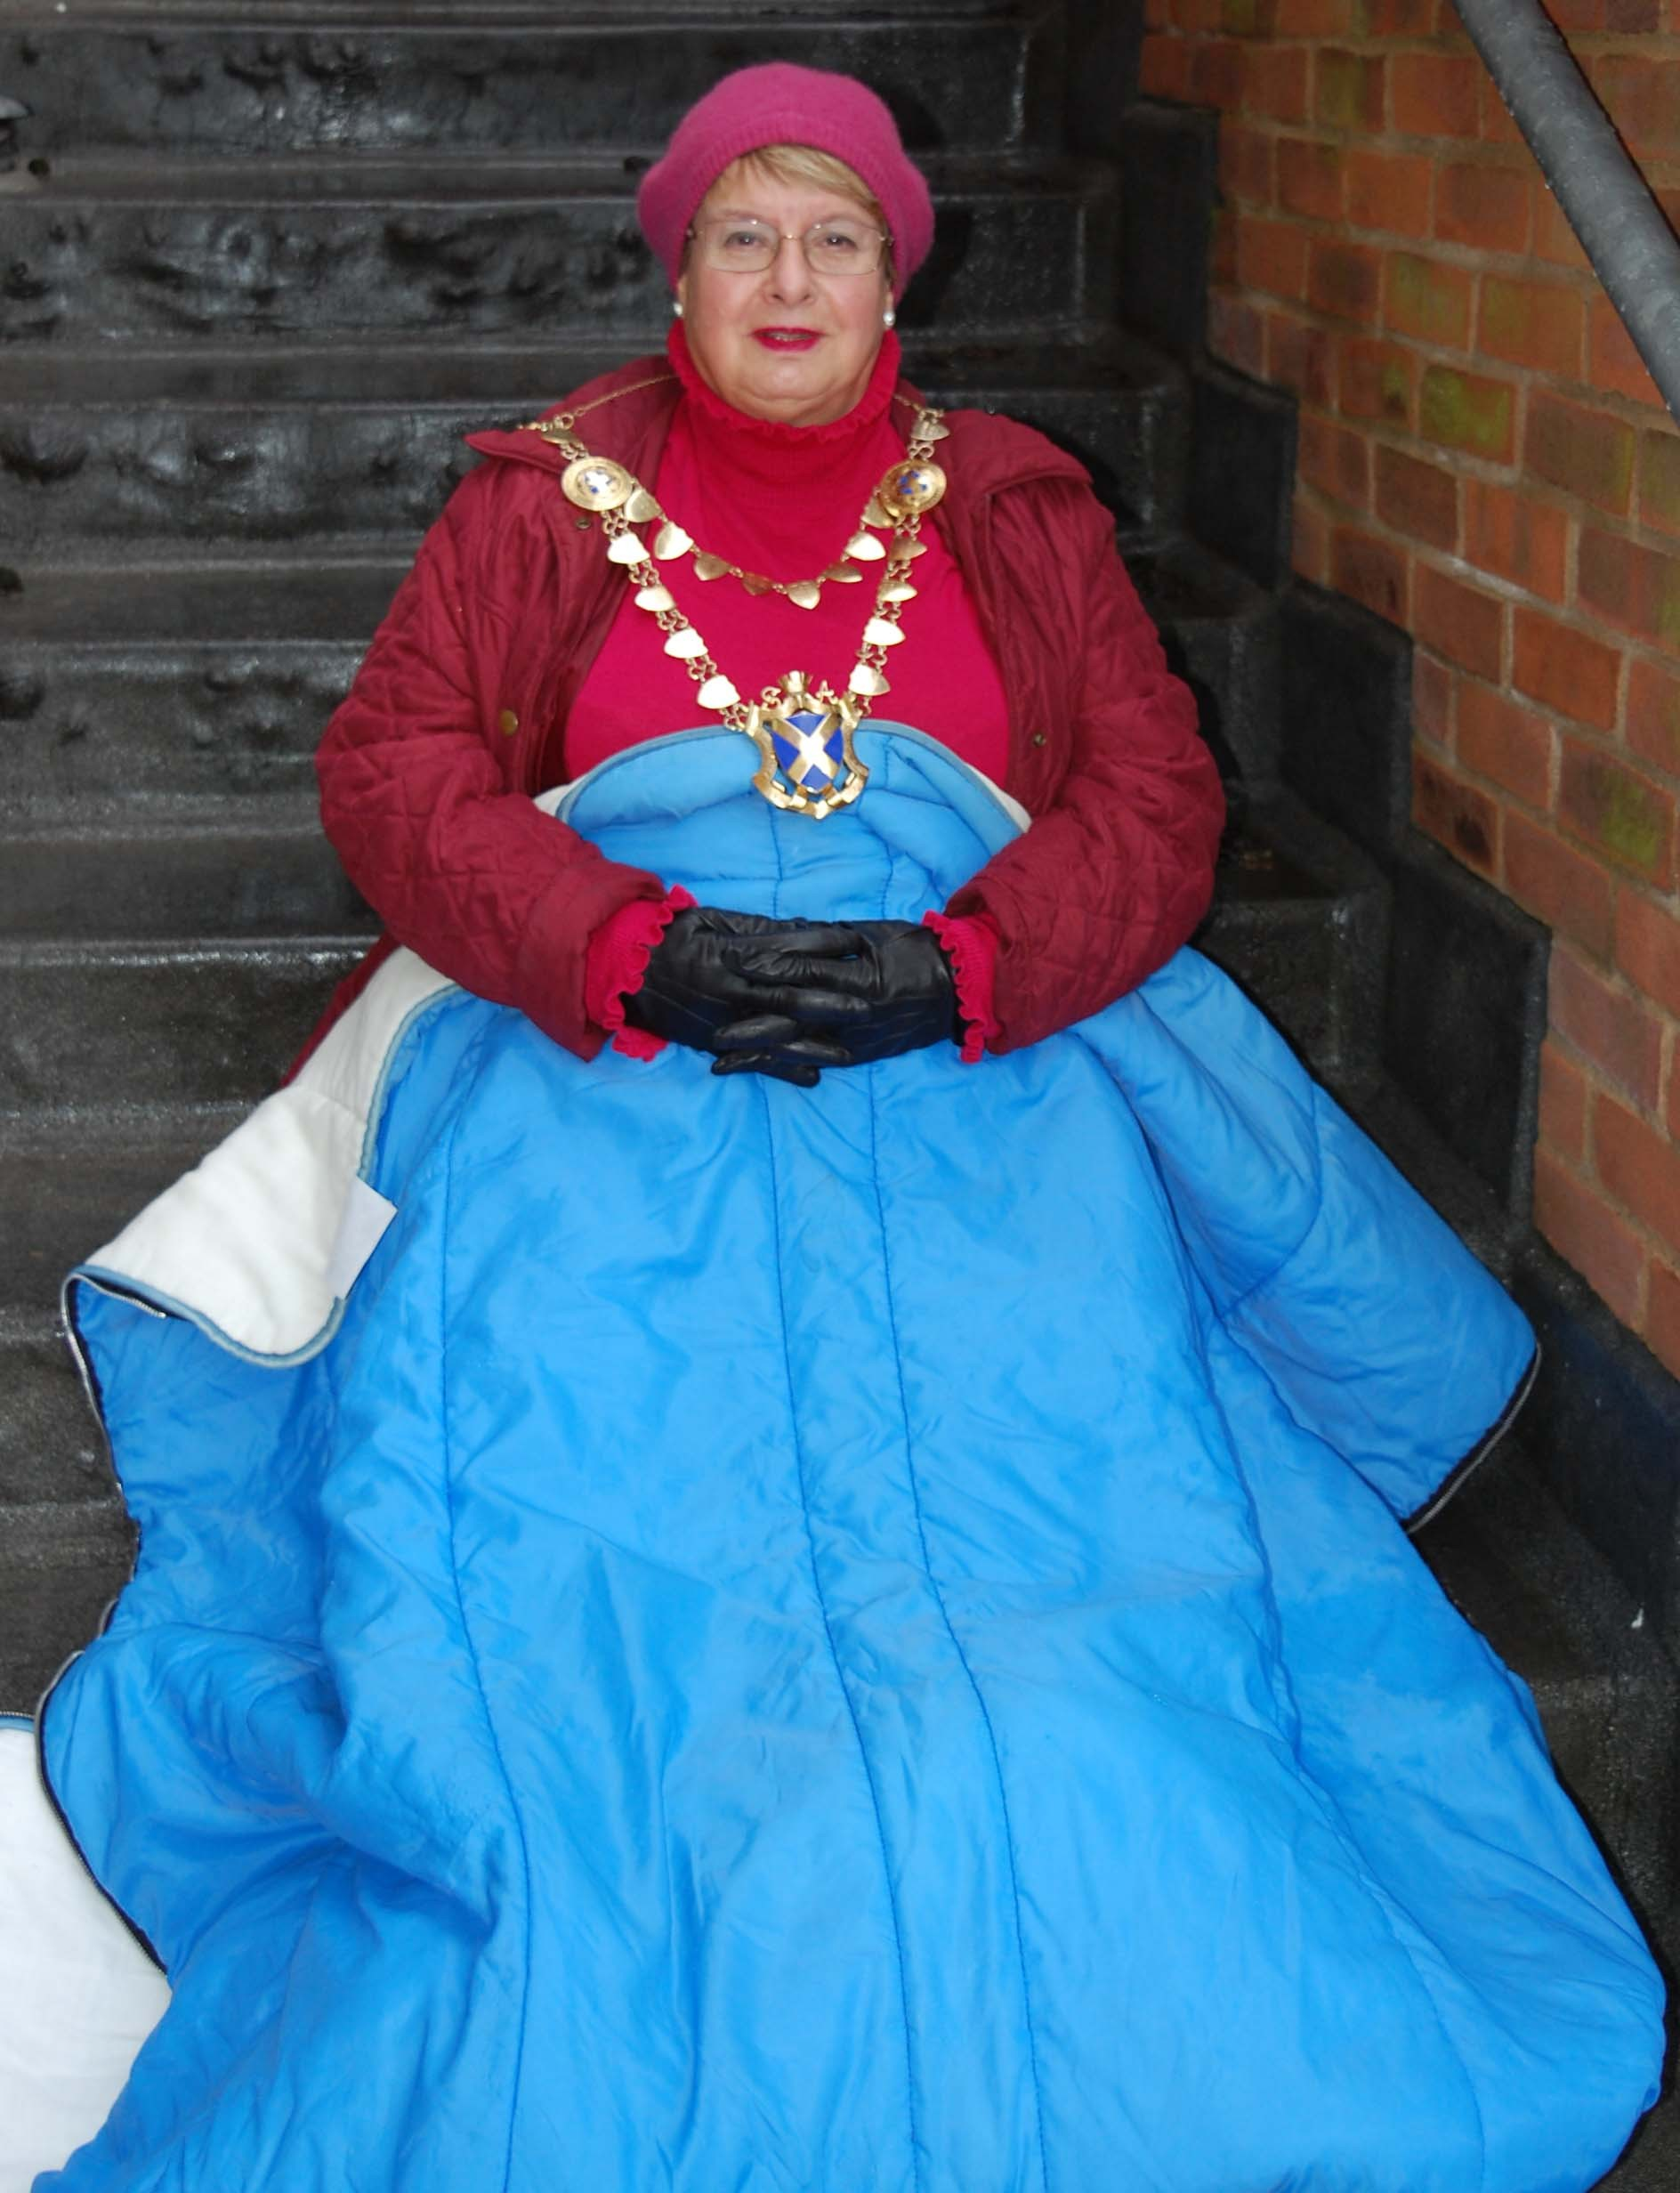 St Albans Mayor Councillor Rosemary Farmer will be braving the cold at St Albans Sleepout on Friday